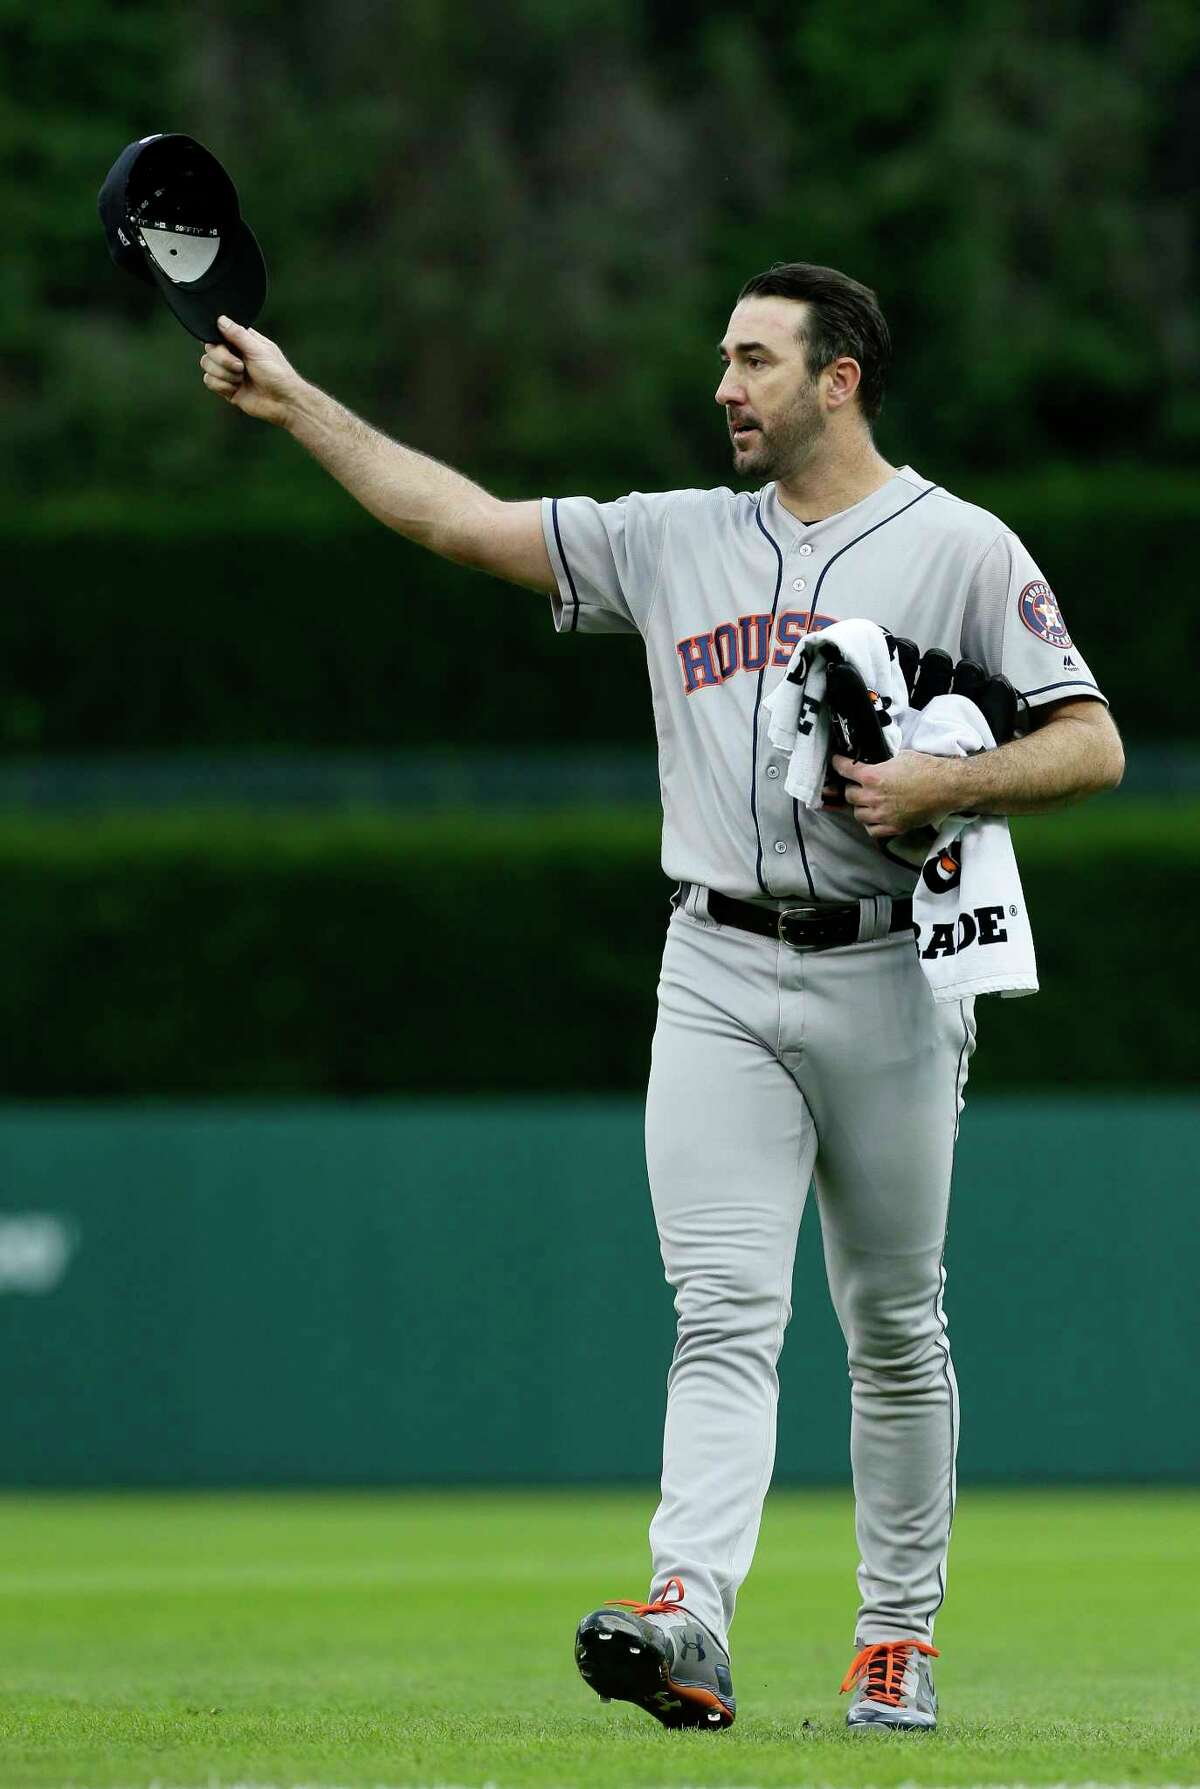 Houston Astros starting pitcher Justin Verlander acknowledges the fans at Comerica Park after he was introduced before a baseball game against the Detroit Tigers, Monday, Sept. 10, 2018, in Detroit. (AP Photo/Duane Burleson)